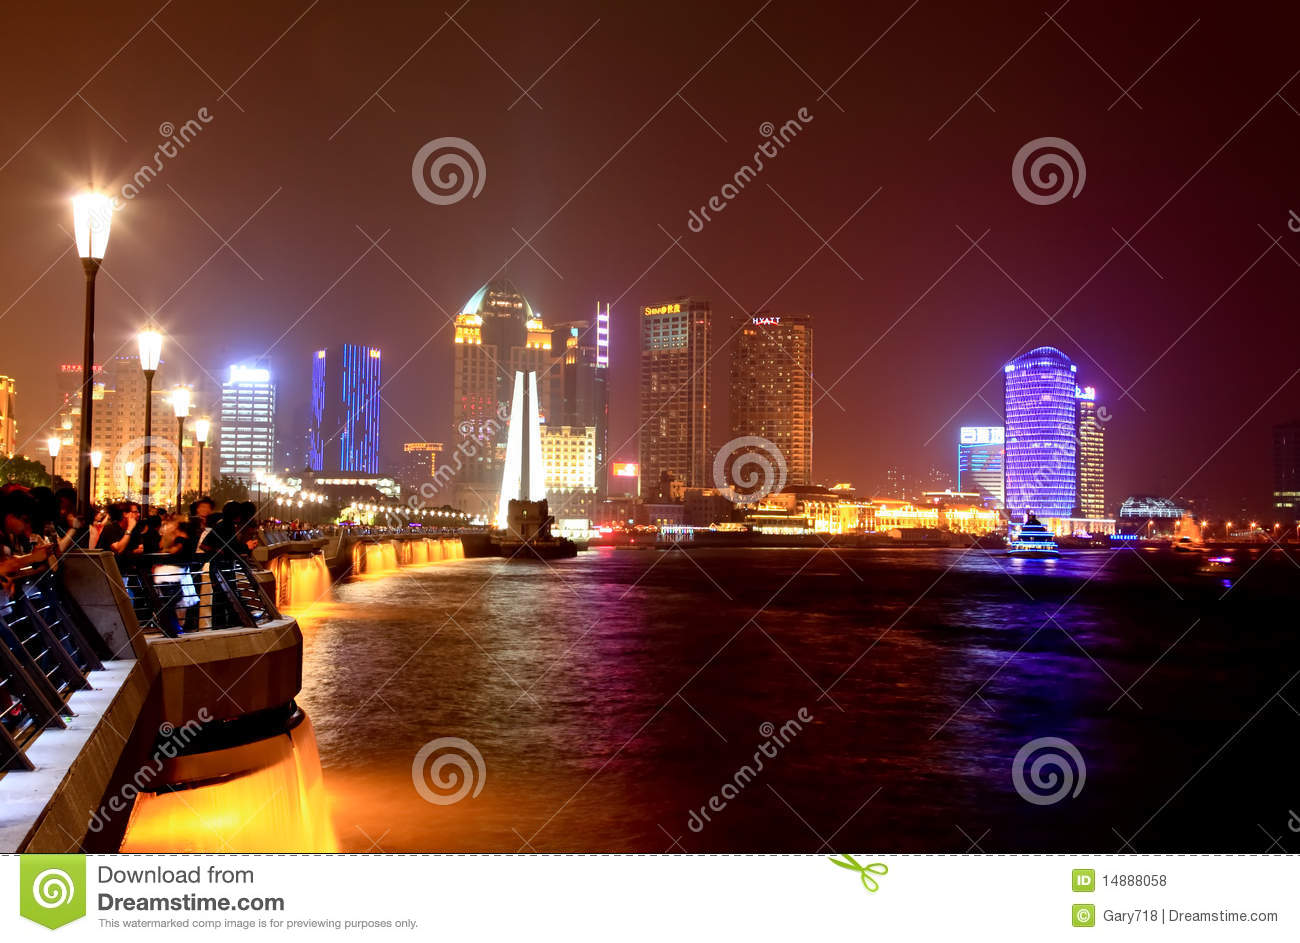 beijing the most crowded city in china Here are the top 10 most popular places to visit in china shanghai is where the west seduces china beijing is guangzhou is a huge and crowded city in china.